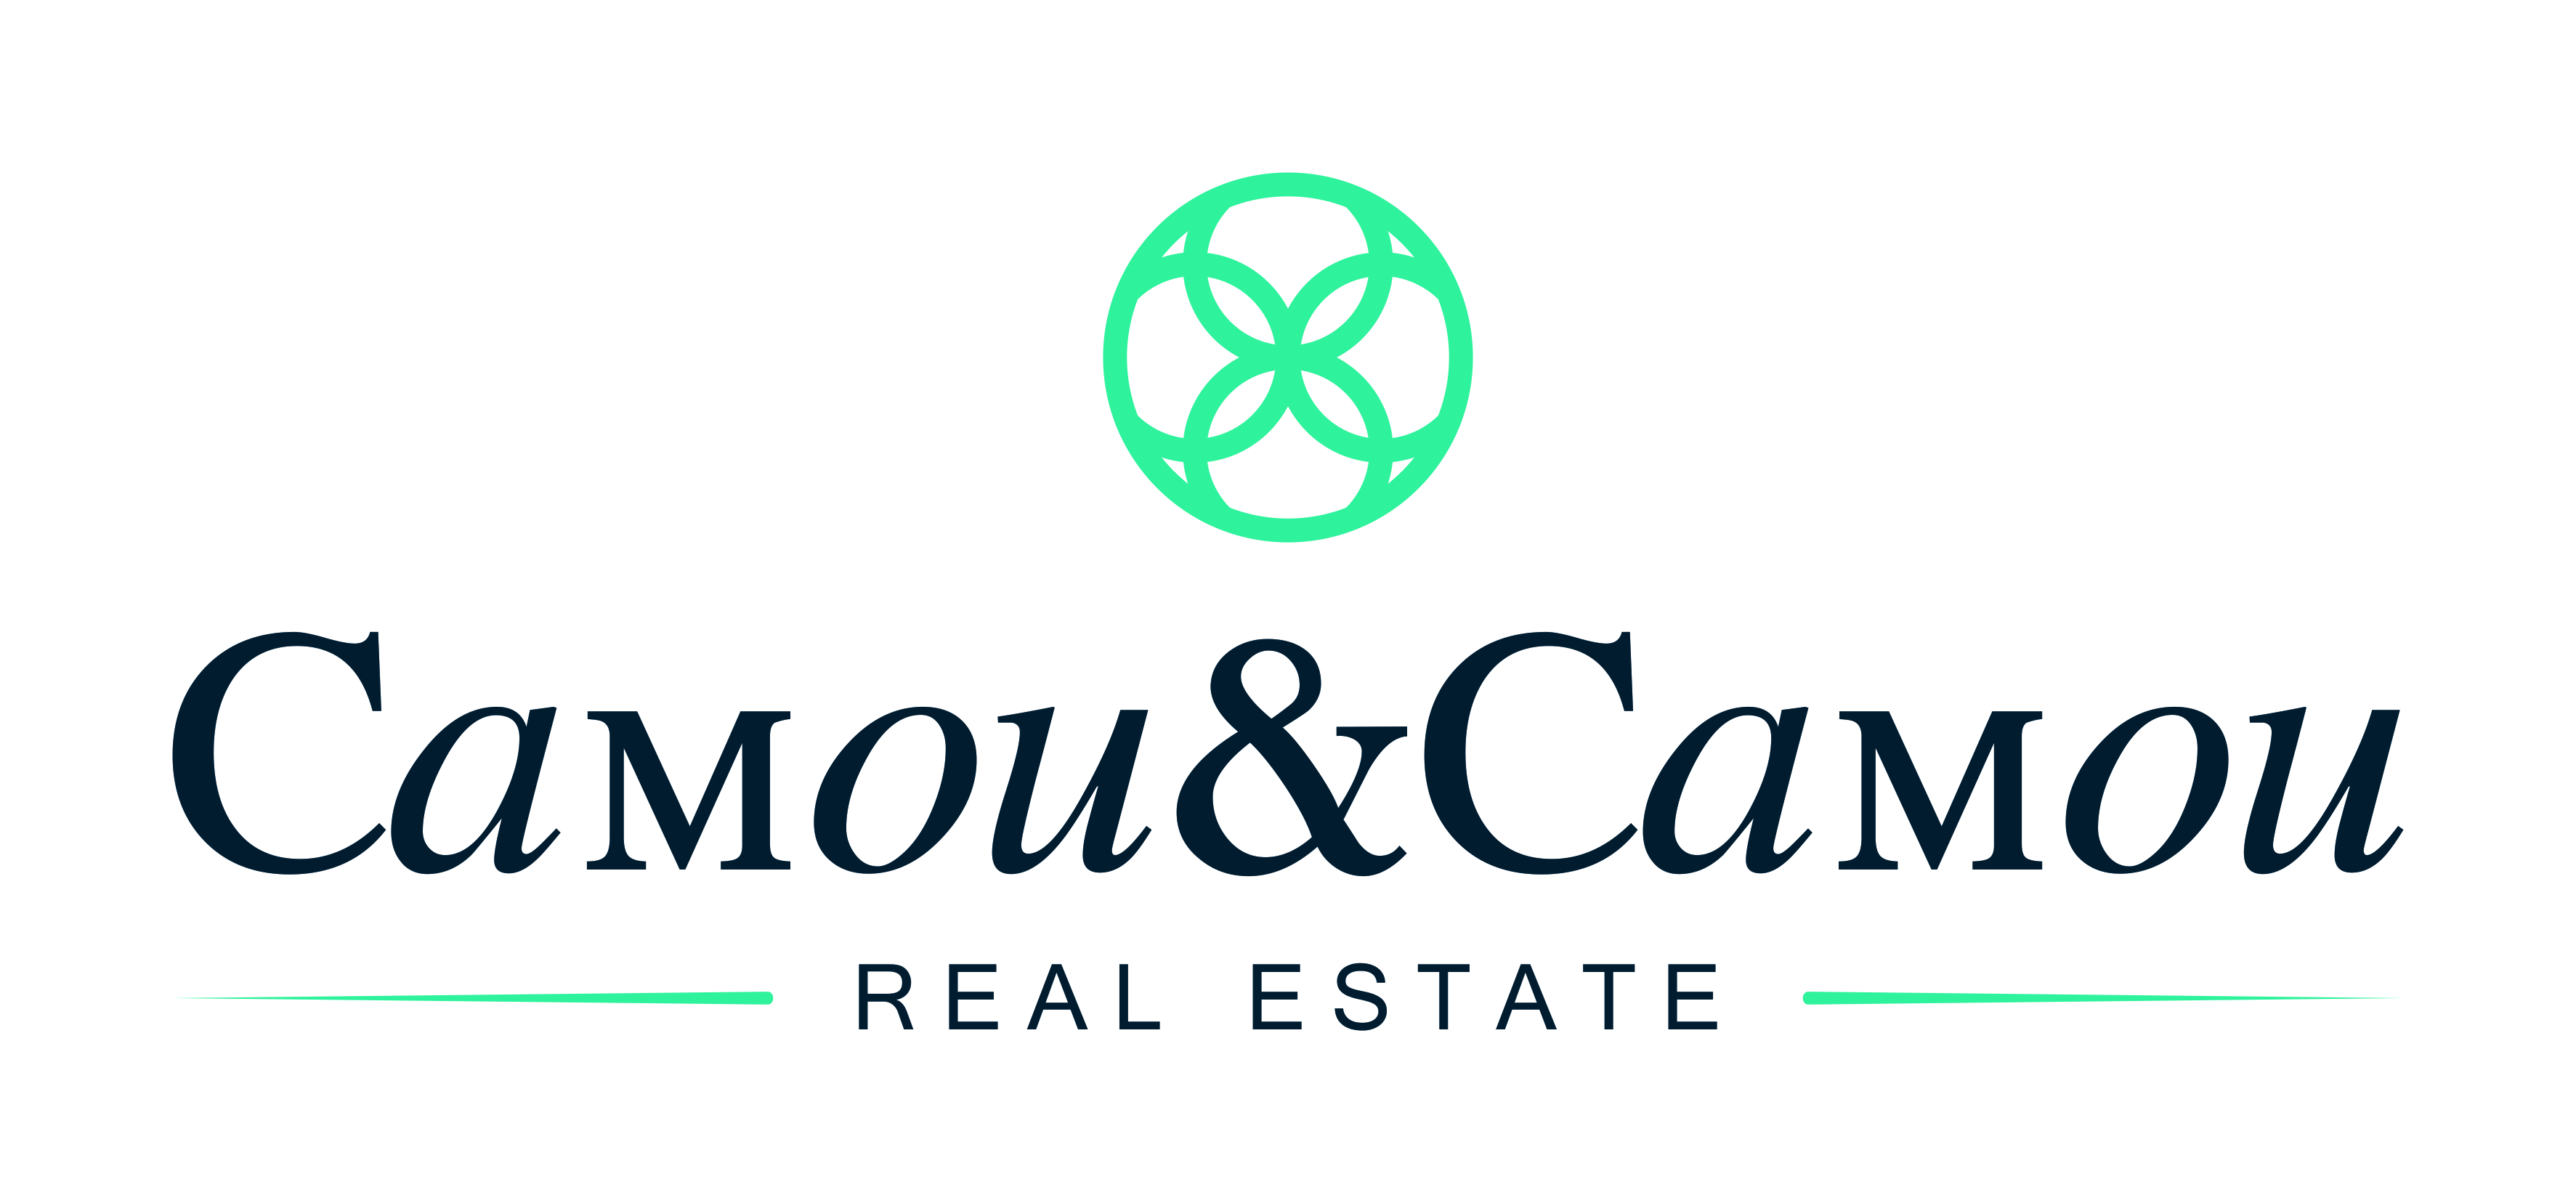 CAMOU & CAMOU REAL ESTATE